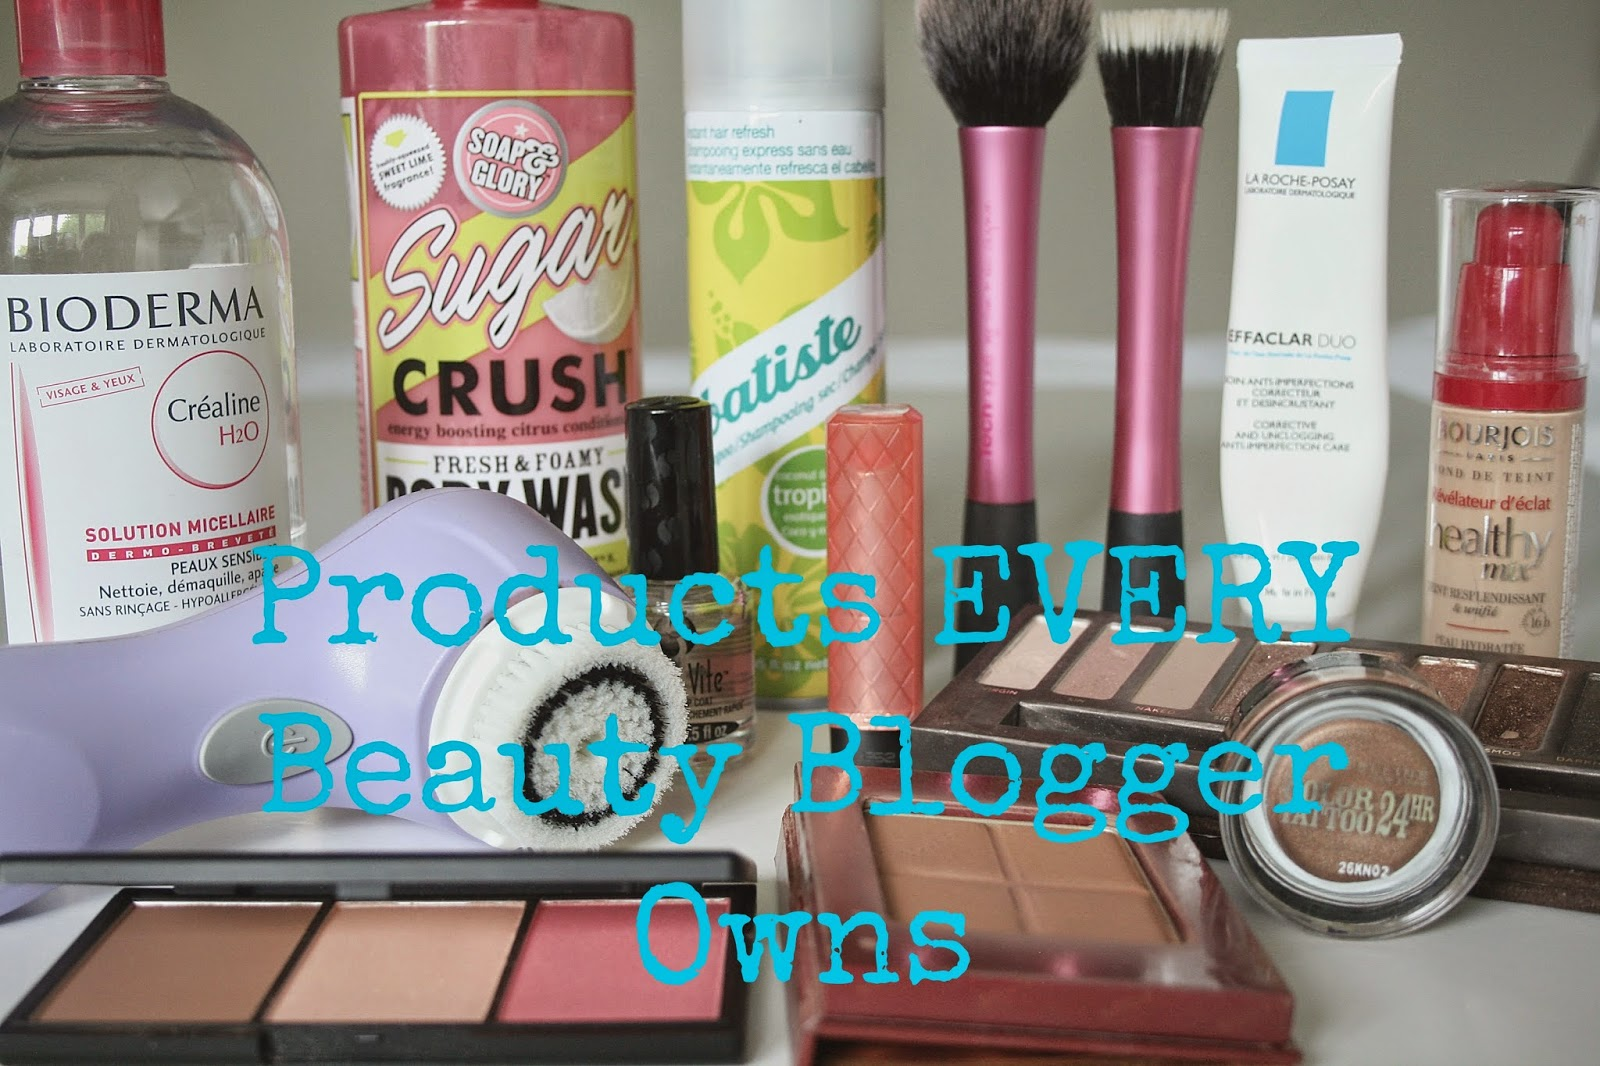 Products-every-beauty-blogger-owns